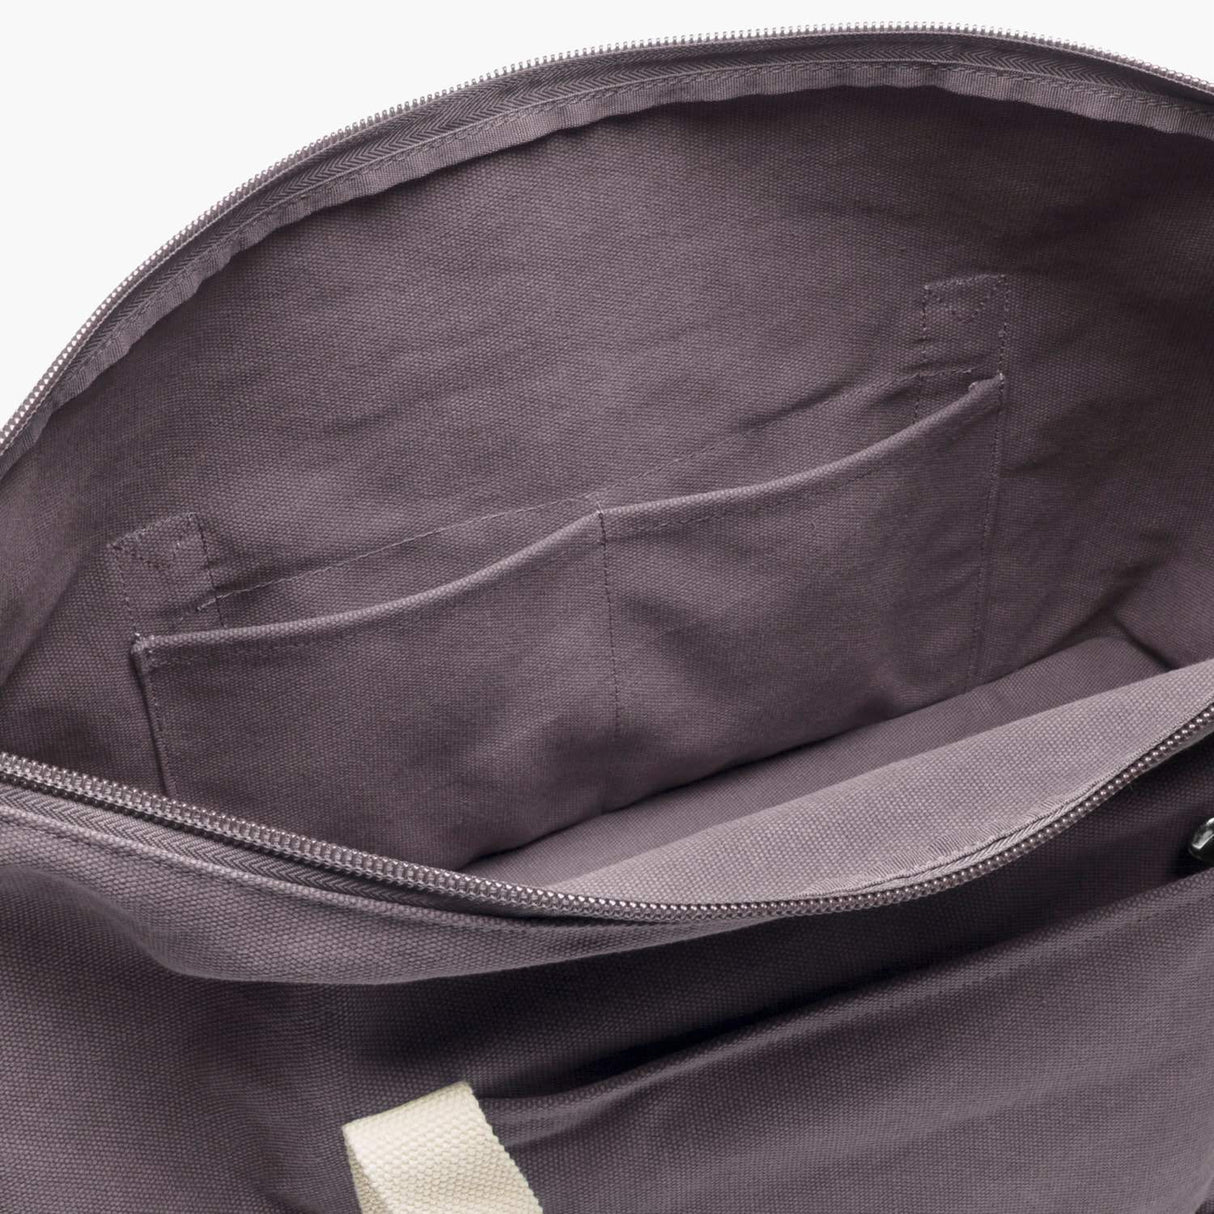 Interior Pockets - The Catalina Deluxe - Washed Canvas - Thistle - Weekender - Lo & Sons